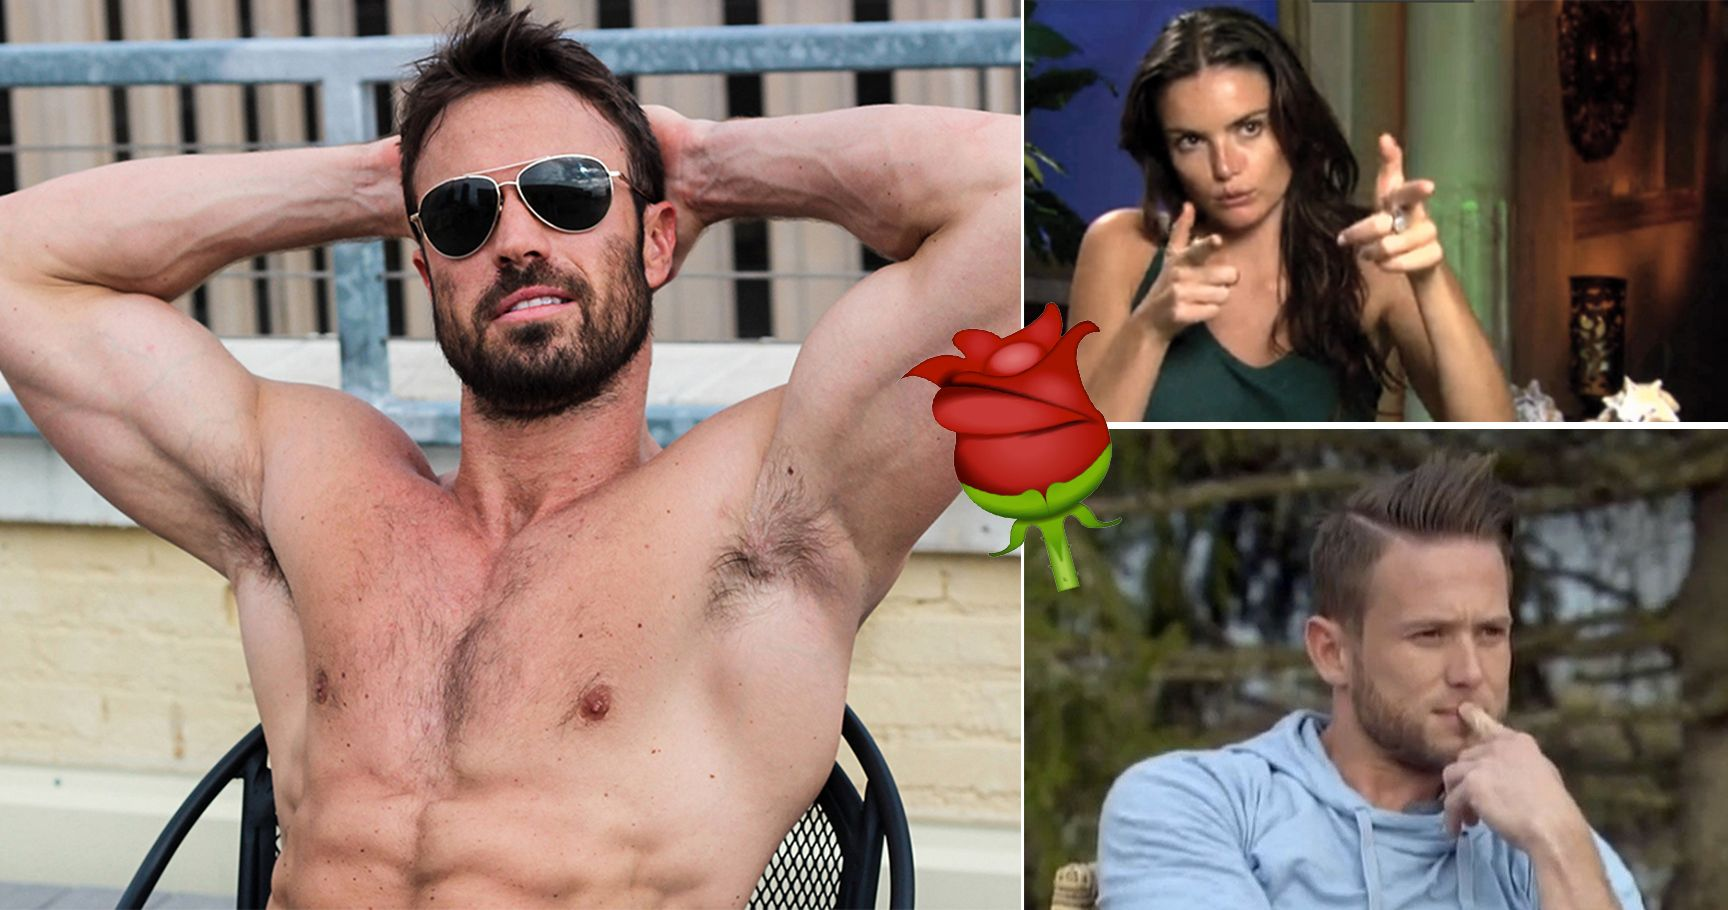 15 Of The Most Savage Villains To Ever Appear On The 'Bachelor' Franchise